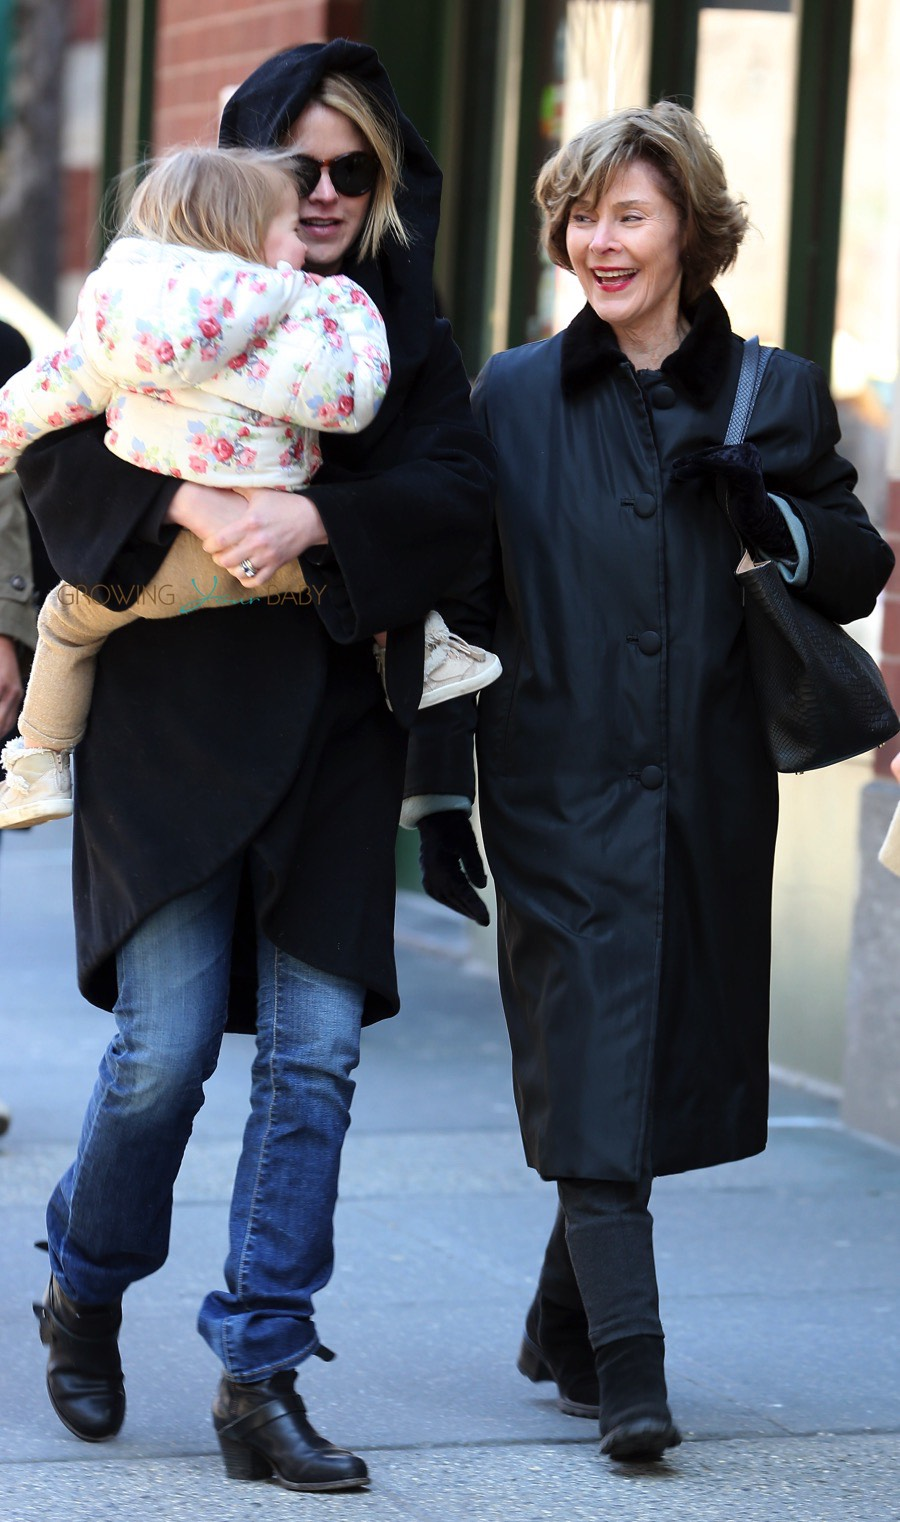 jenna bushhager out in nyc with daughter mila and mom